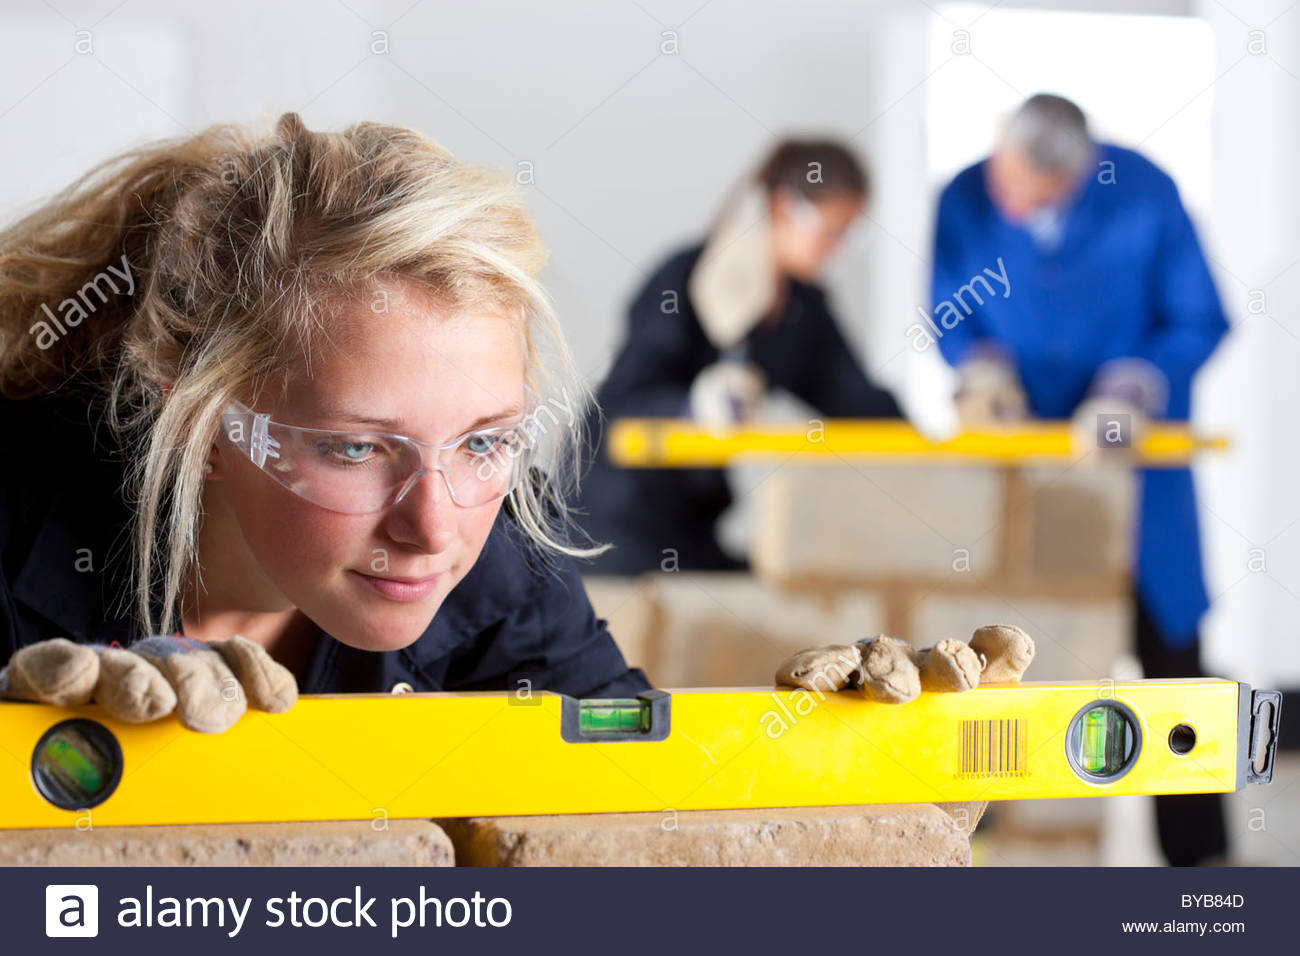 Student using level in bricklaying vocational school Stock Photo